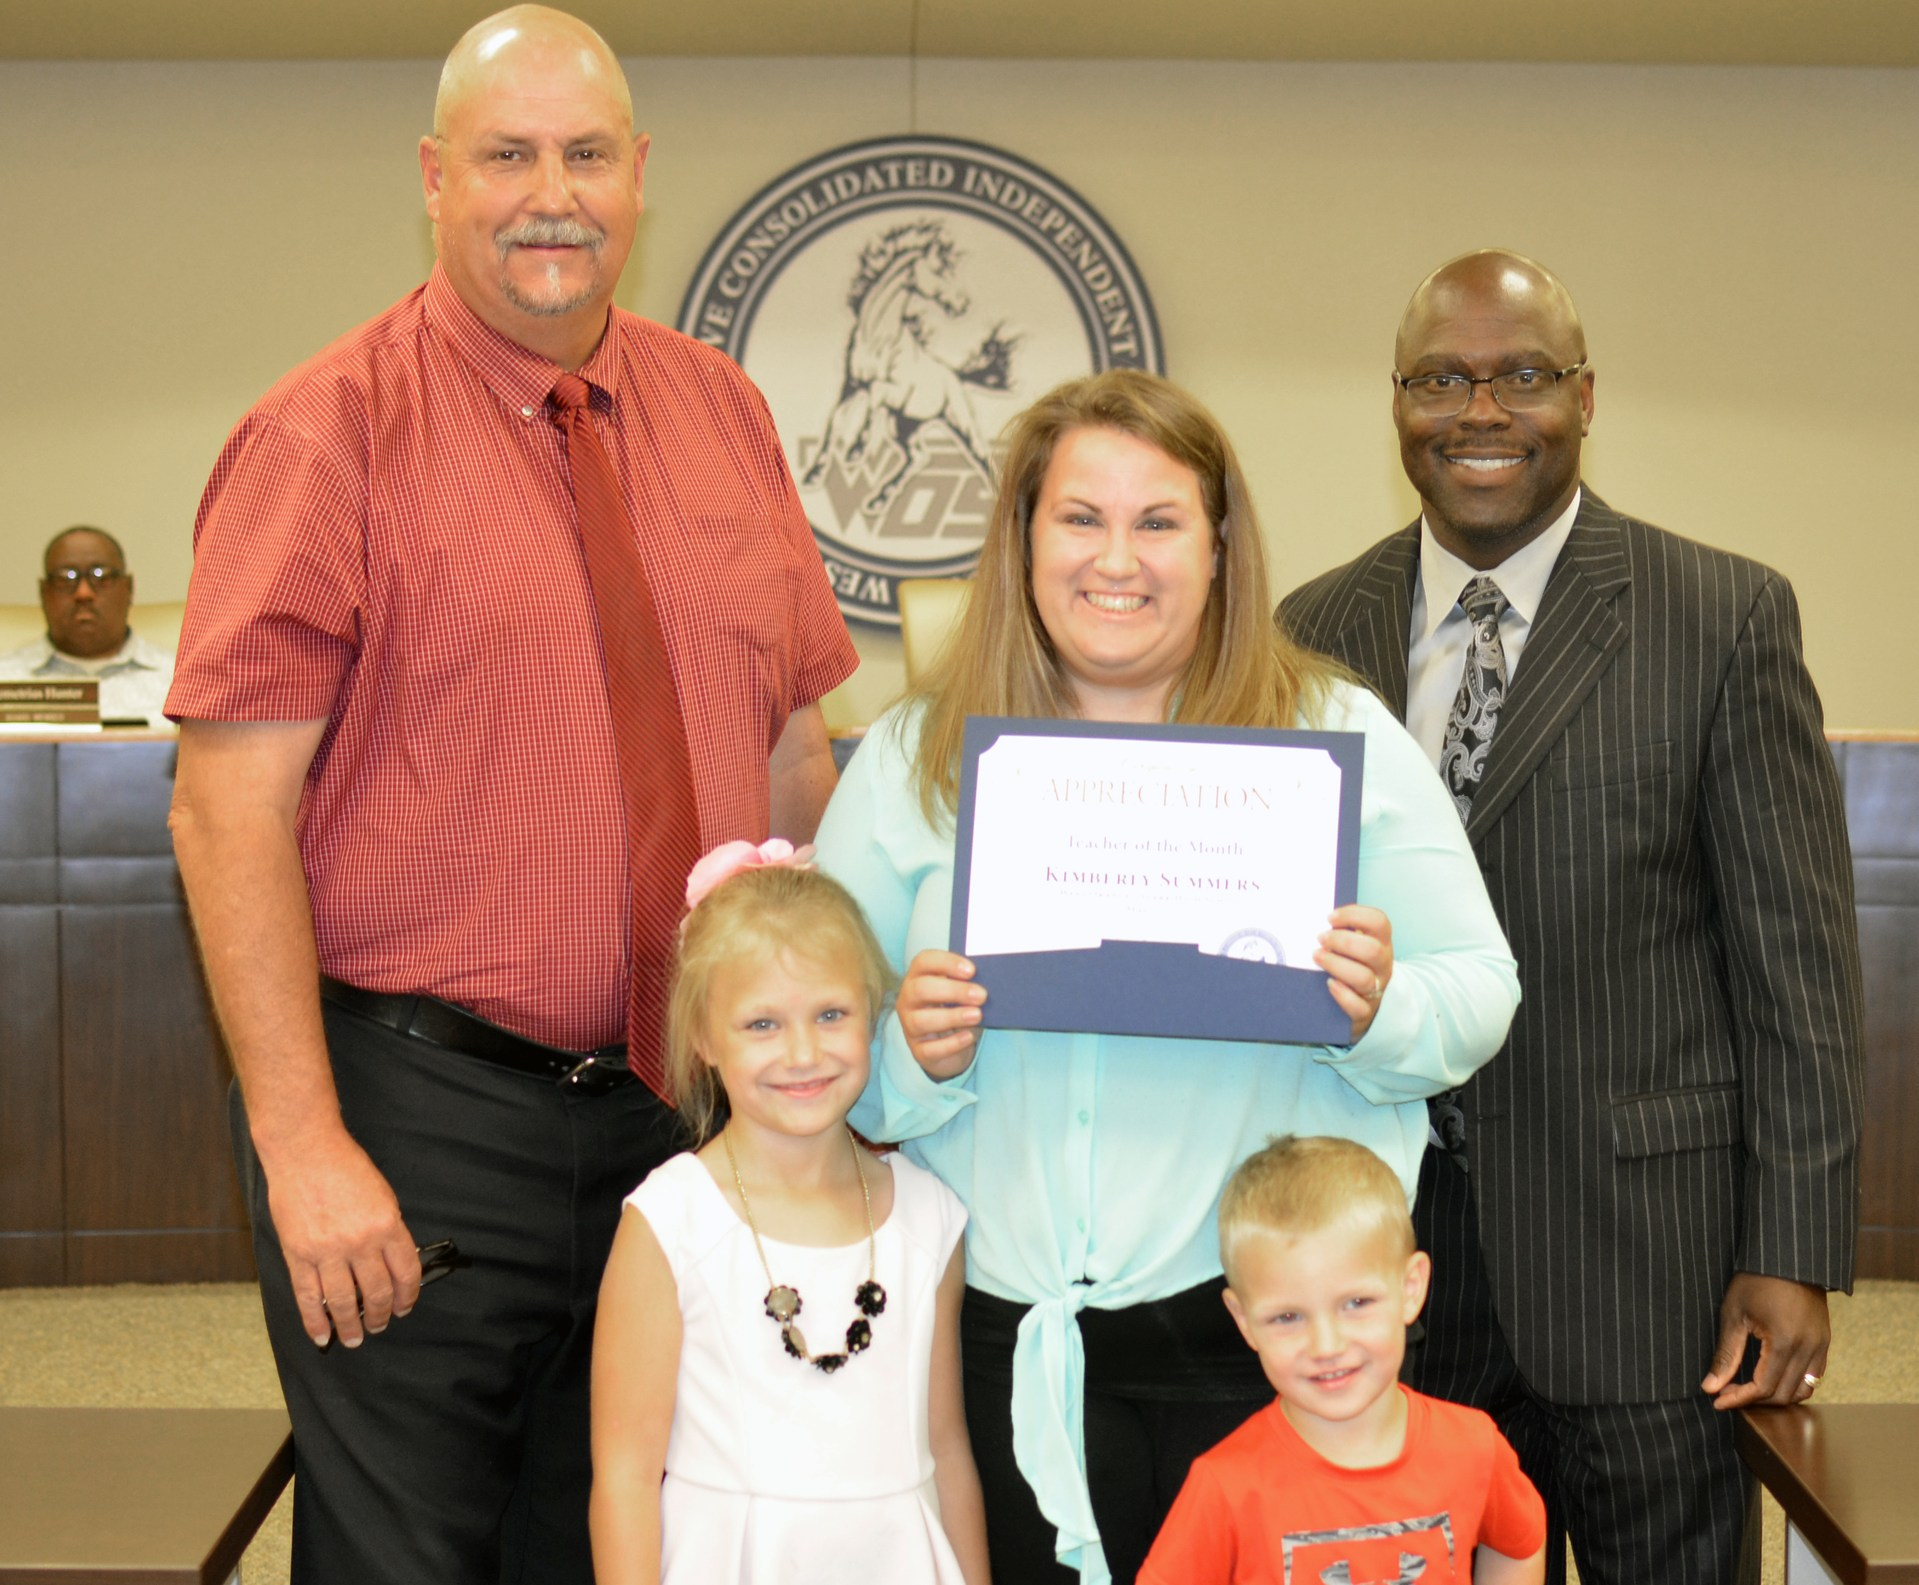 Kimberly Summers is recognized as Teacher of the Month